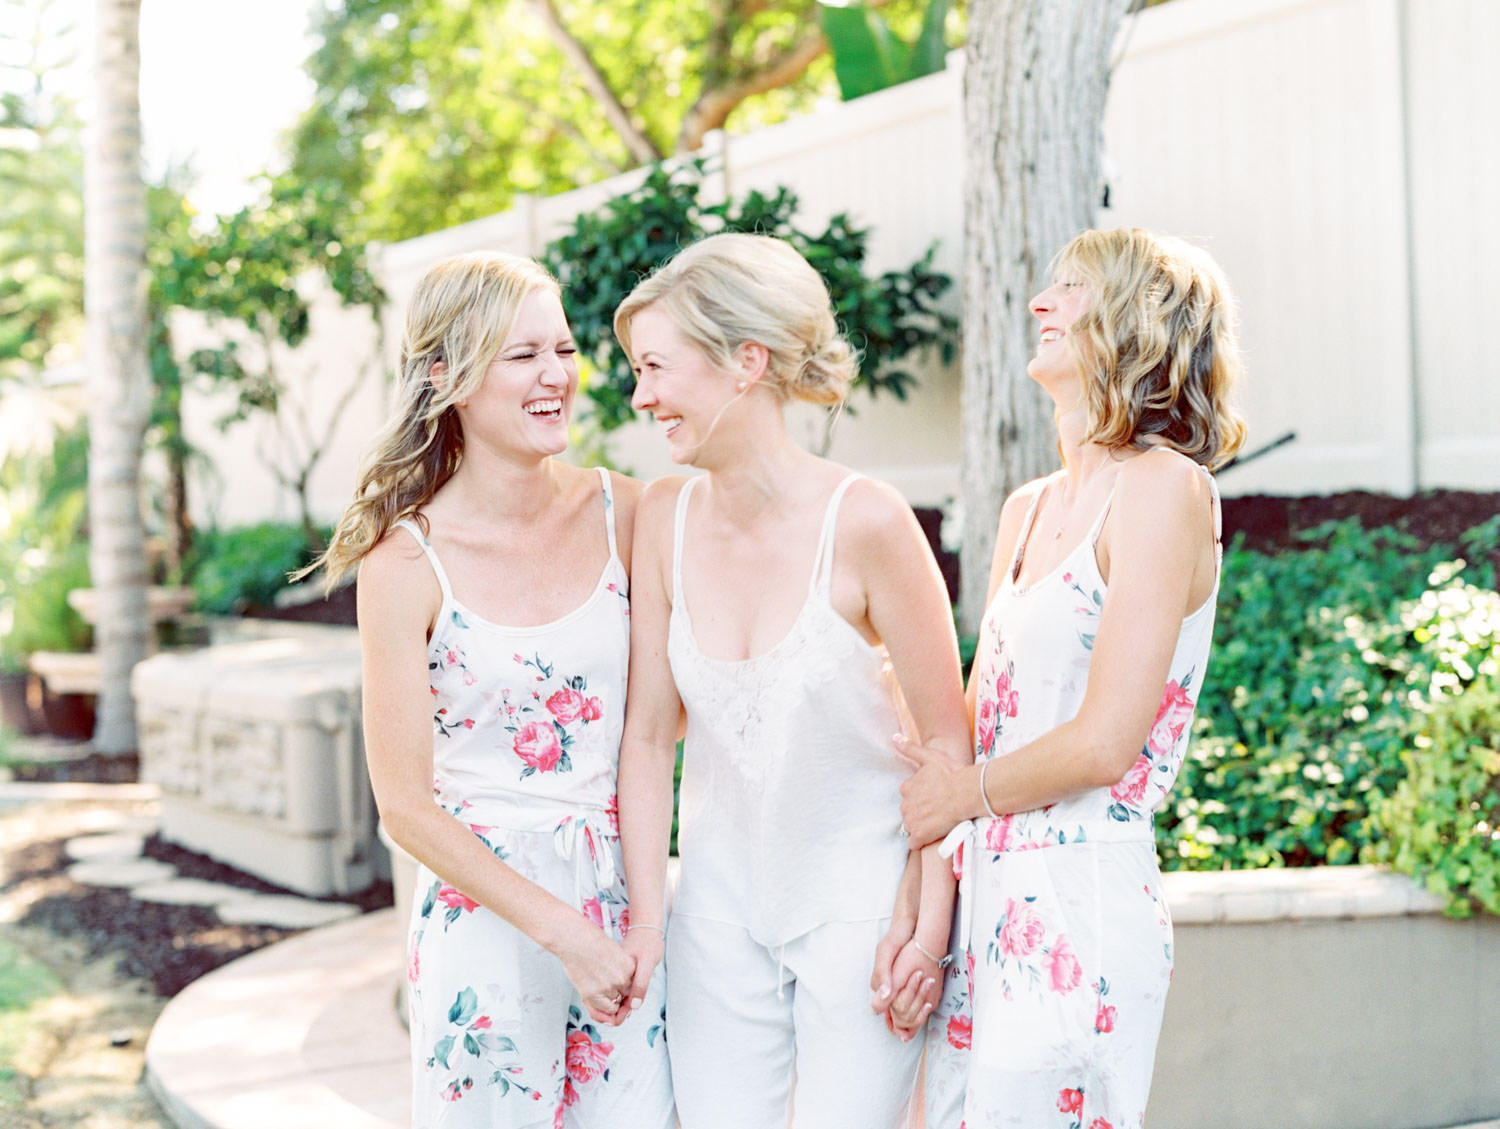 Bride in white silk pajamas laughing with bridesmaids in floral pajamas. Estancia La Jolla wedding shot on film by Cavin Elizabeth Photography. Estancia La Jolla wedding shot on film by Cavin Elizabeth Photography